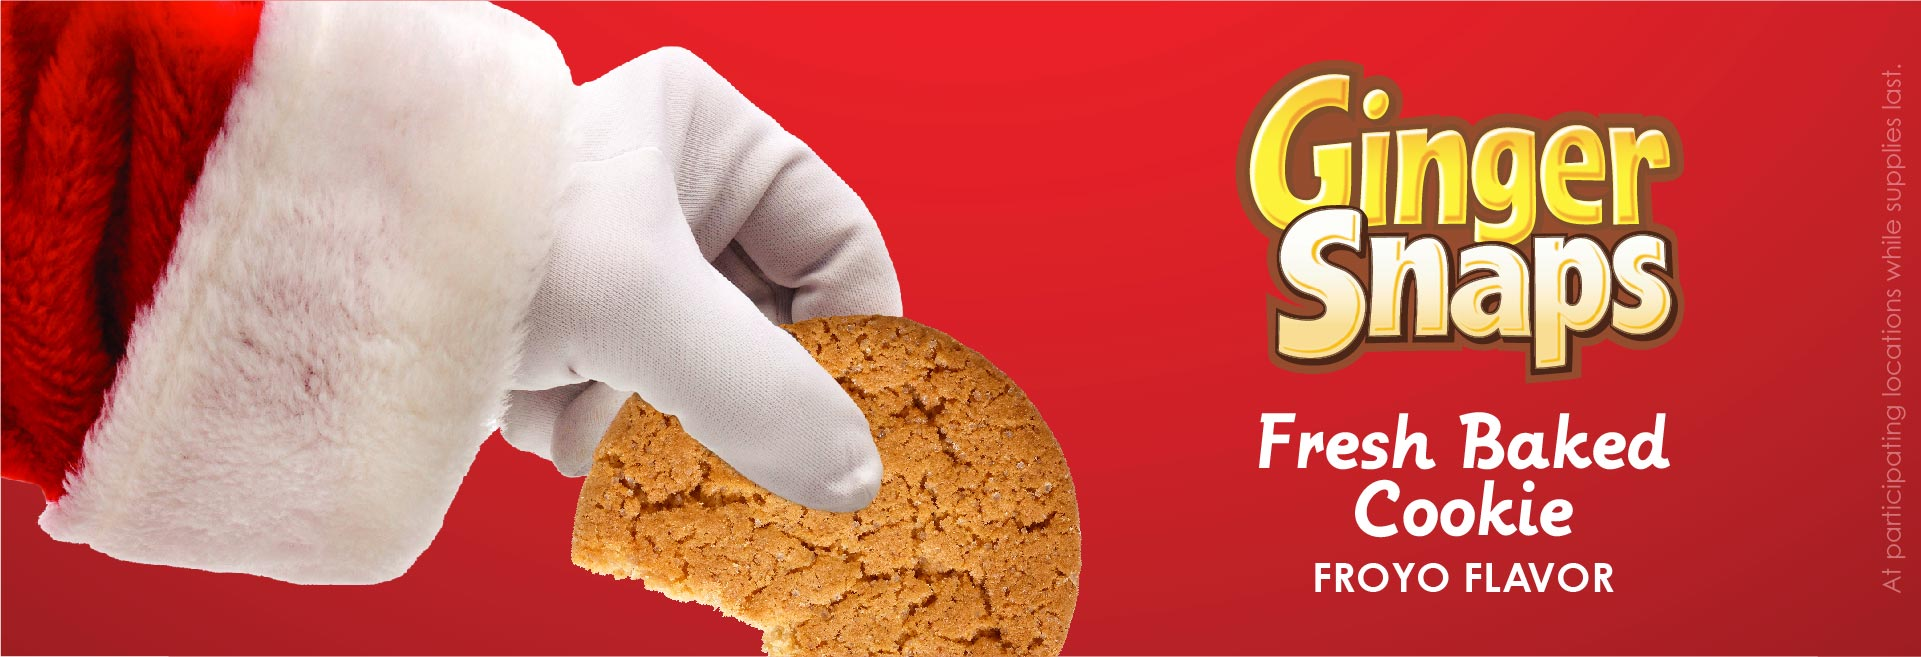 A Santa hand grabbing a Ginger Snap cookie. Ginger Snaps Fresh Baked Cookie. *SNAP* And just like that, a brand new flavor for December. Our Ginger Snaps Fresh Baked cookie flavor is made with real spiced Ginger Snap cookies. We'll be leaving some out for Santa!